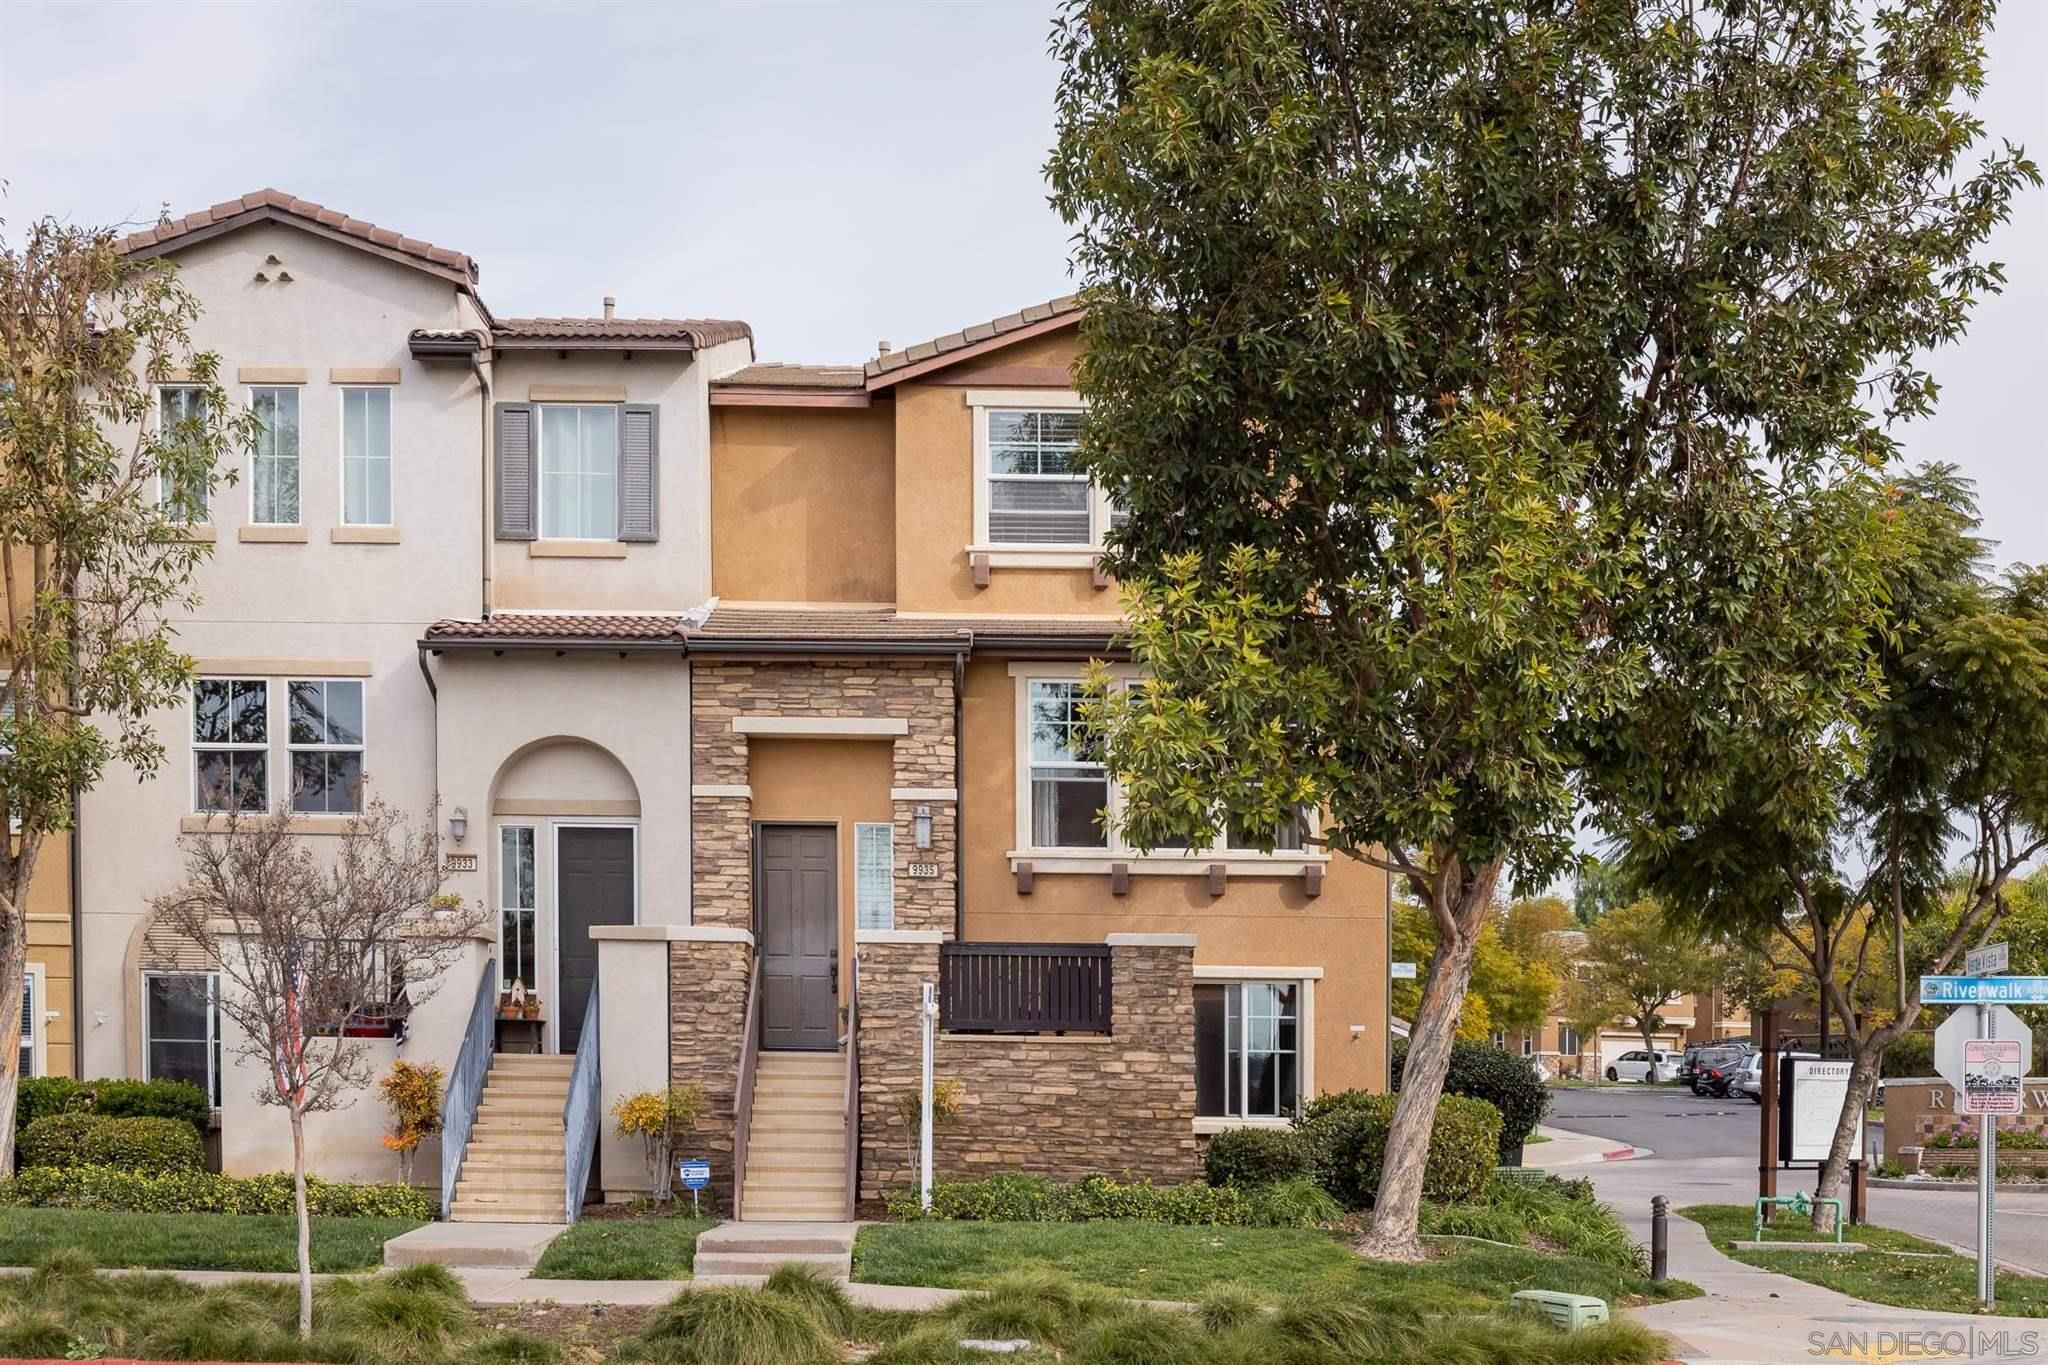 Main Photo: SANTEE Townhouse for sale : 3 bedrooms : 9935 Leavesly Trl